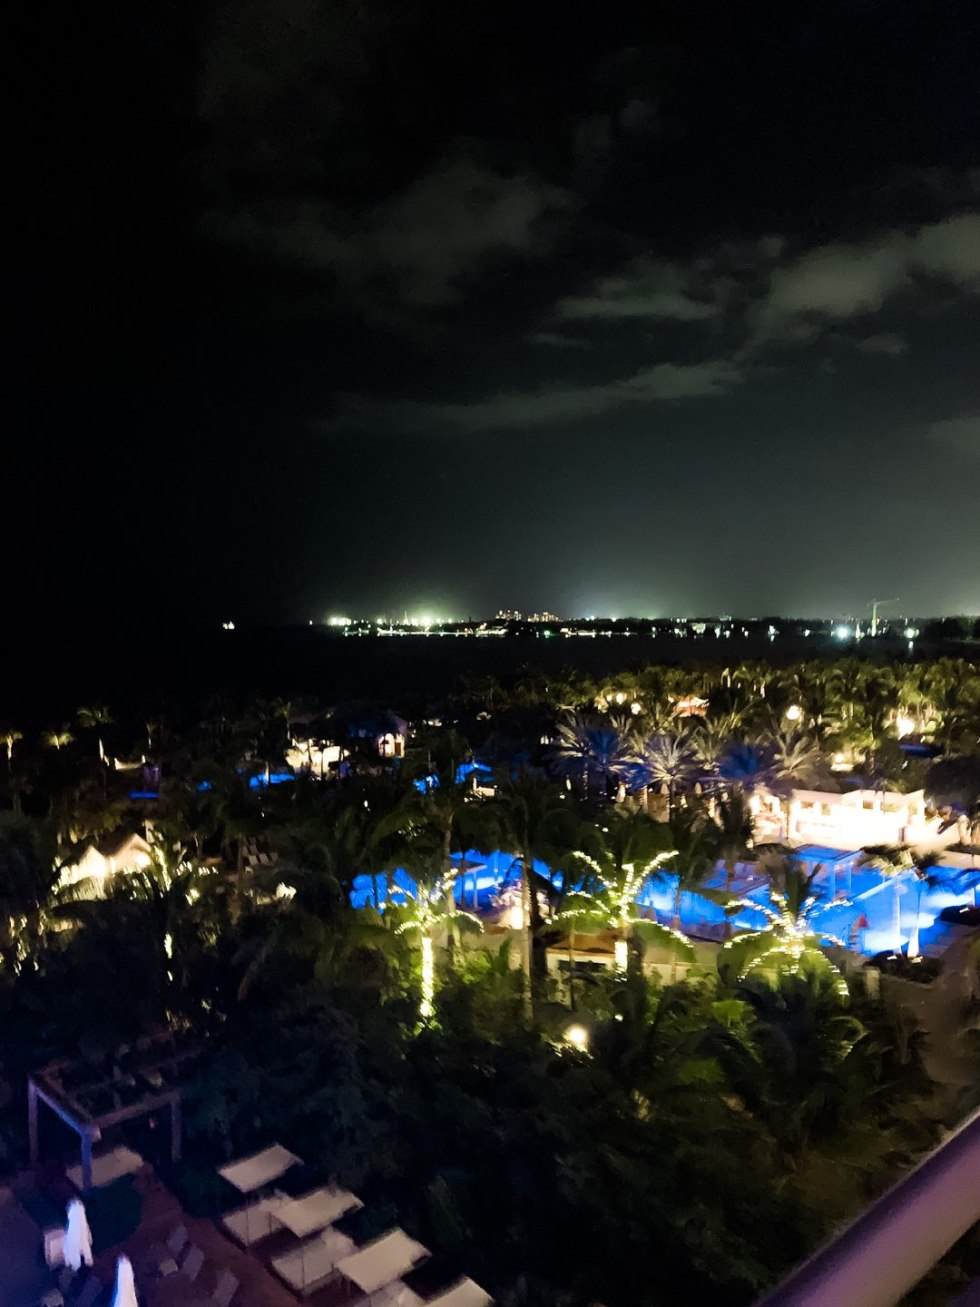 Warming Up in the Bahamas: the Best Things to Do at Baha Mar - I'm Fixin' To - @mbg0112 | Warming Up in the Bahamas: the Best Things to Do in Baha Mar by popular North Carolina travel blog, I'm Fixin' To: image of palm trees with white lights on them.